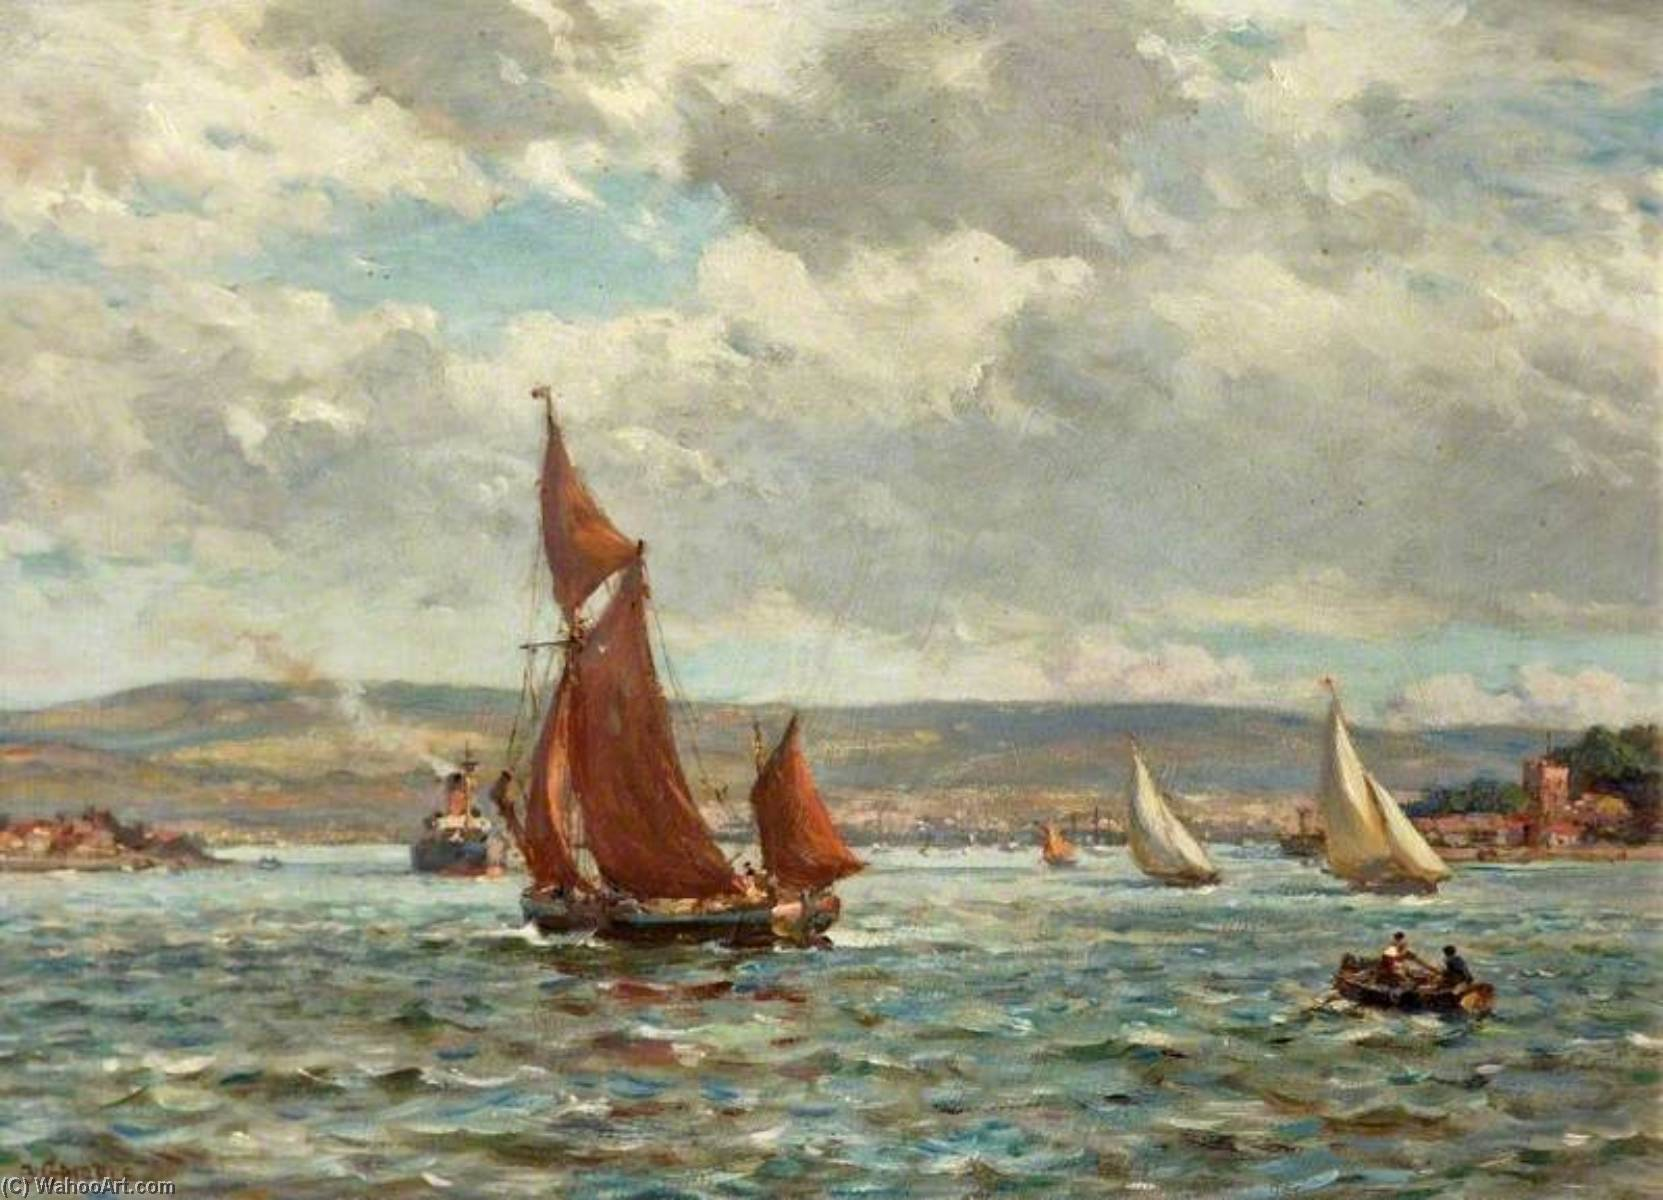 The Purbeck Hills from Poole Harbour, Dorset by Bernard Finnigan Gribble | Art Reproduction | WahooArt.com